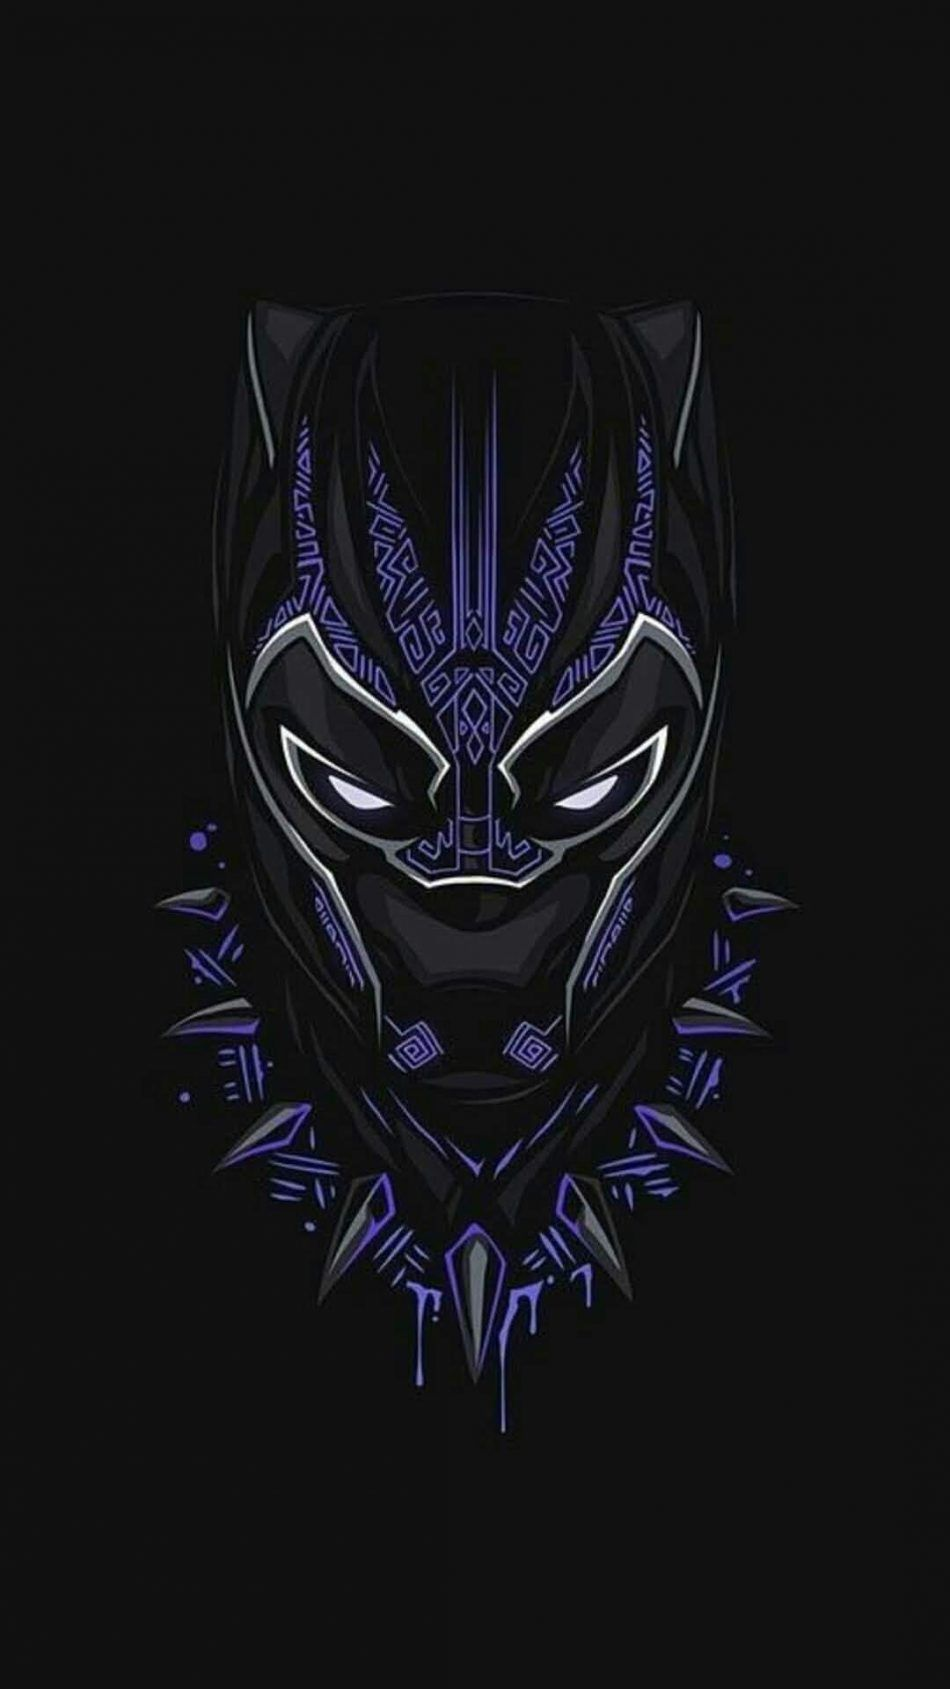 Black Panther Mobile Hd Wallpapers Wallpaper Cave